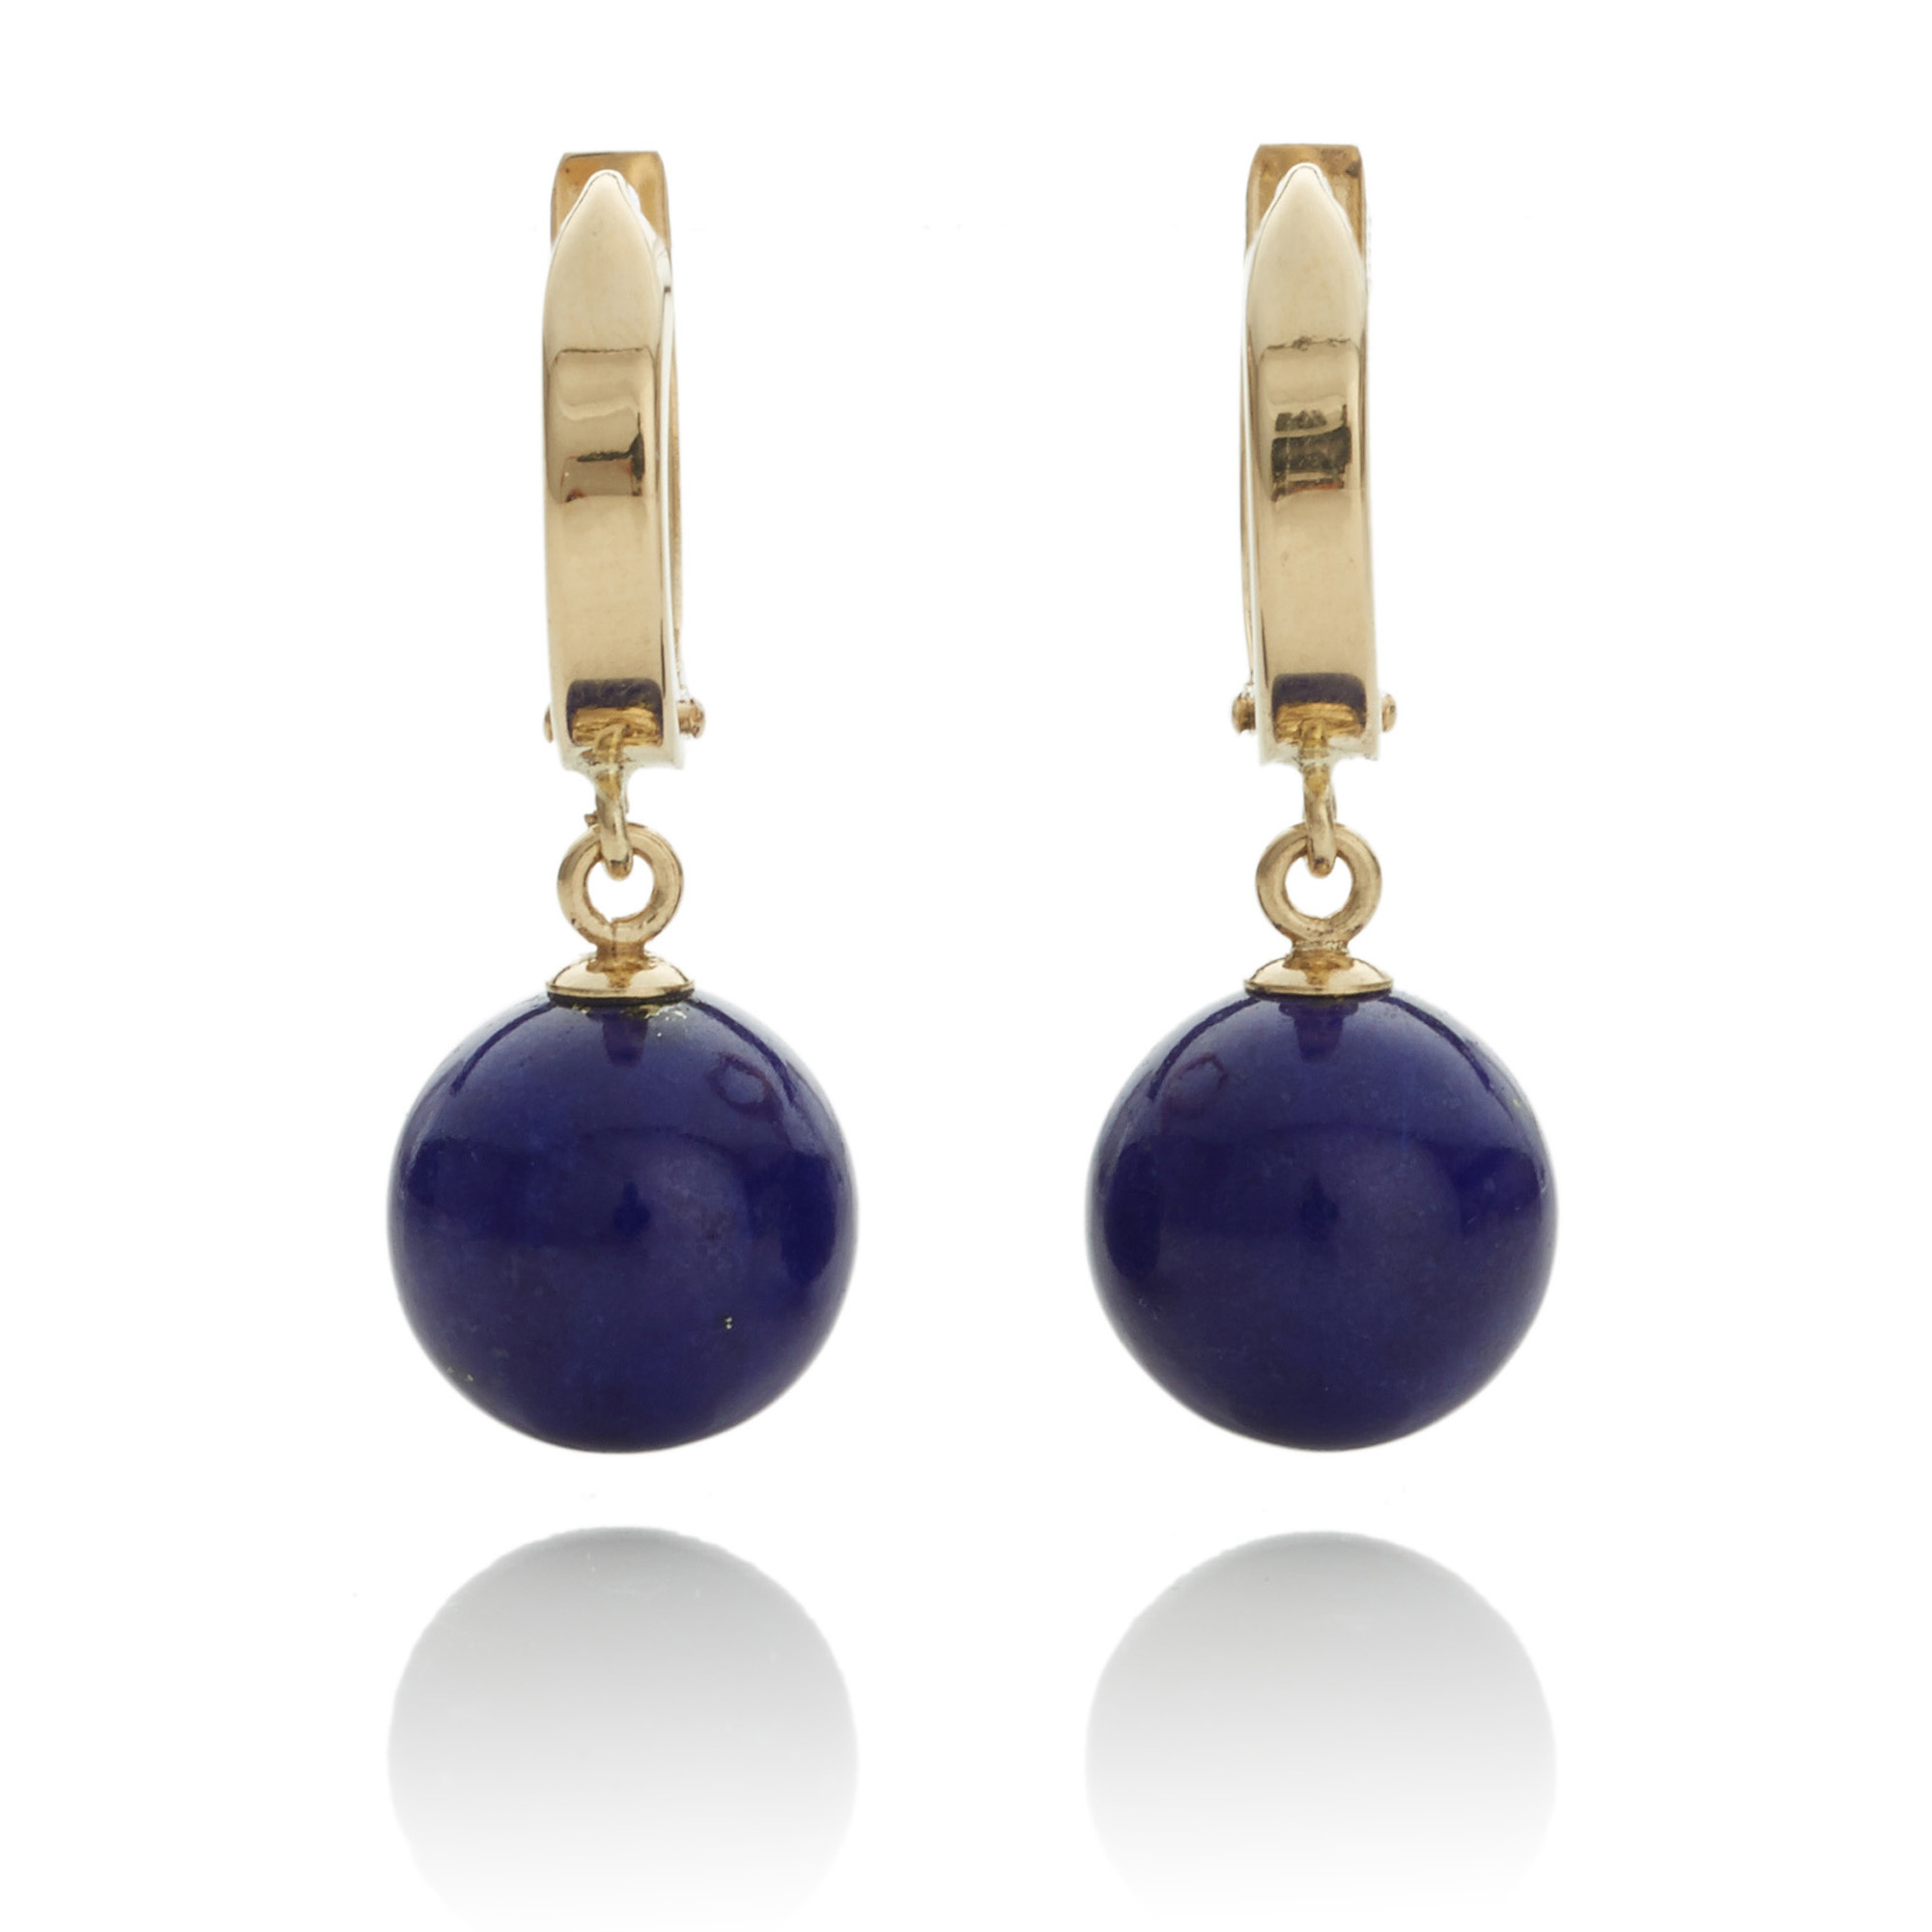 Gump's Gold Hoop & Lapis Drop Earrings